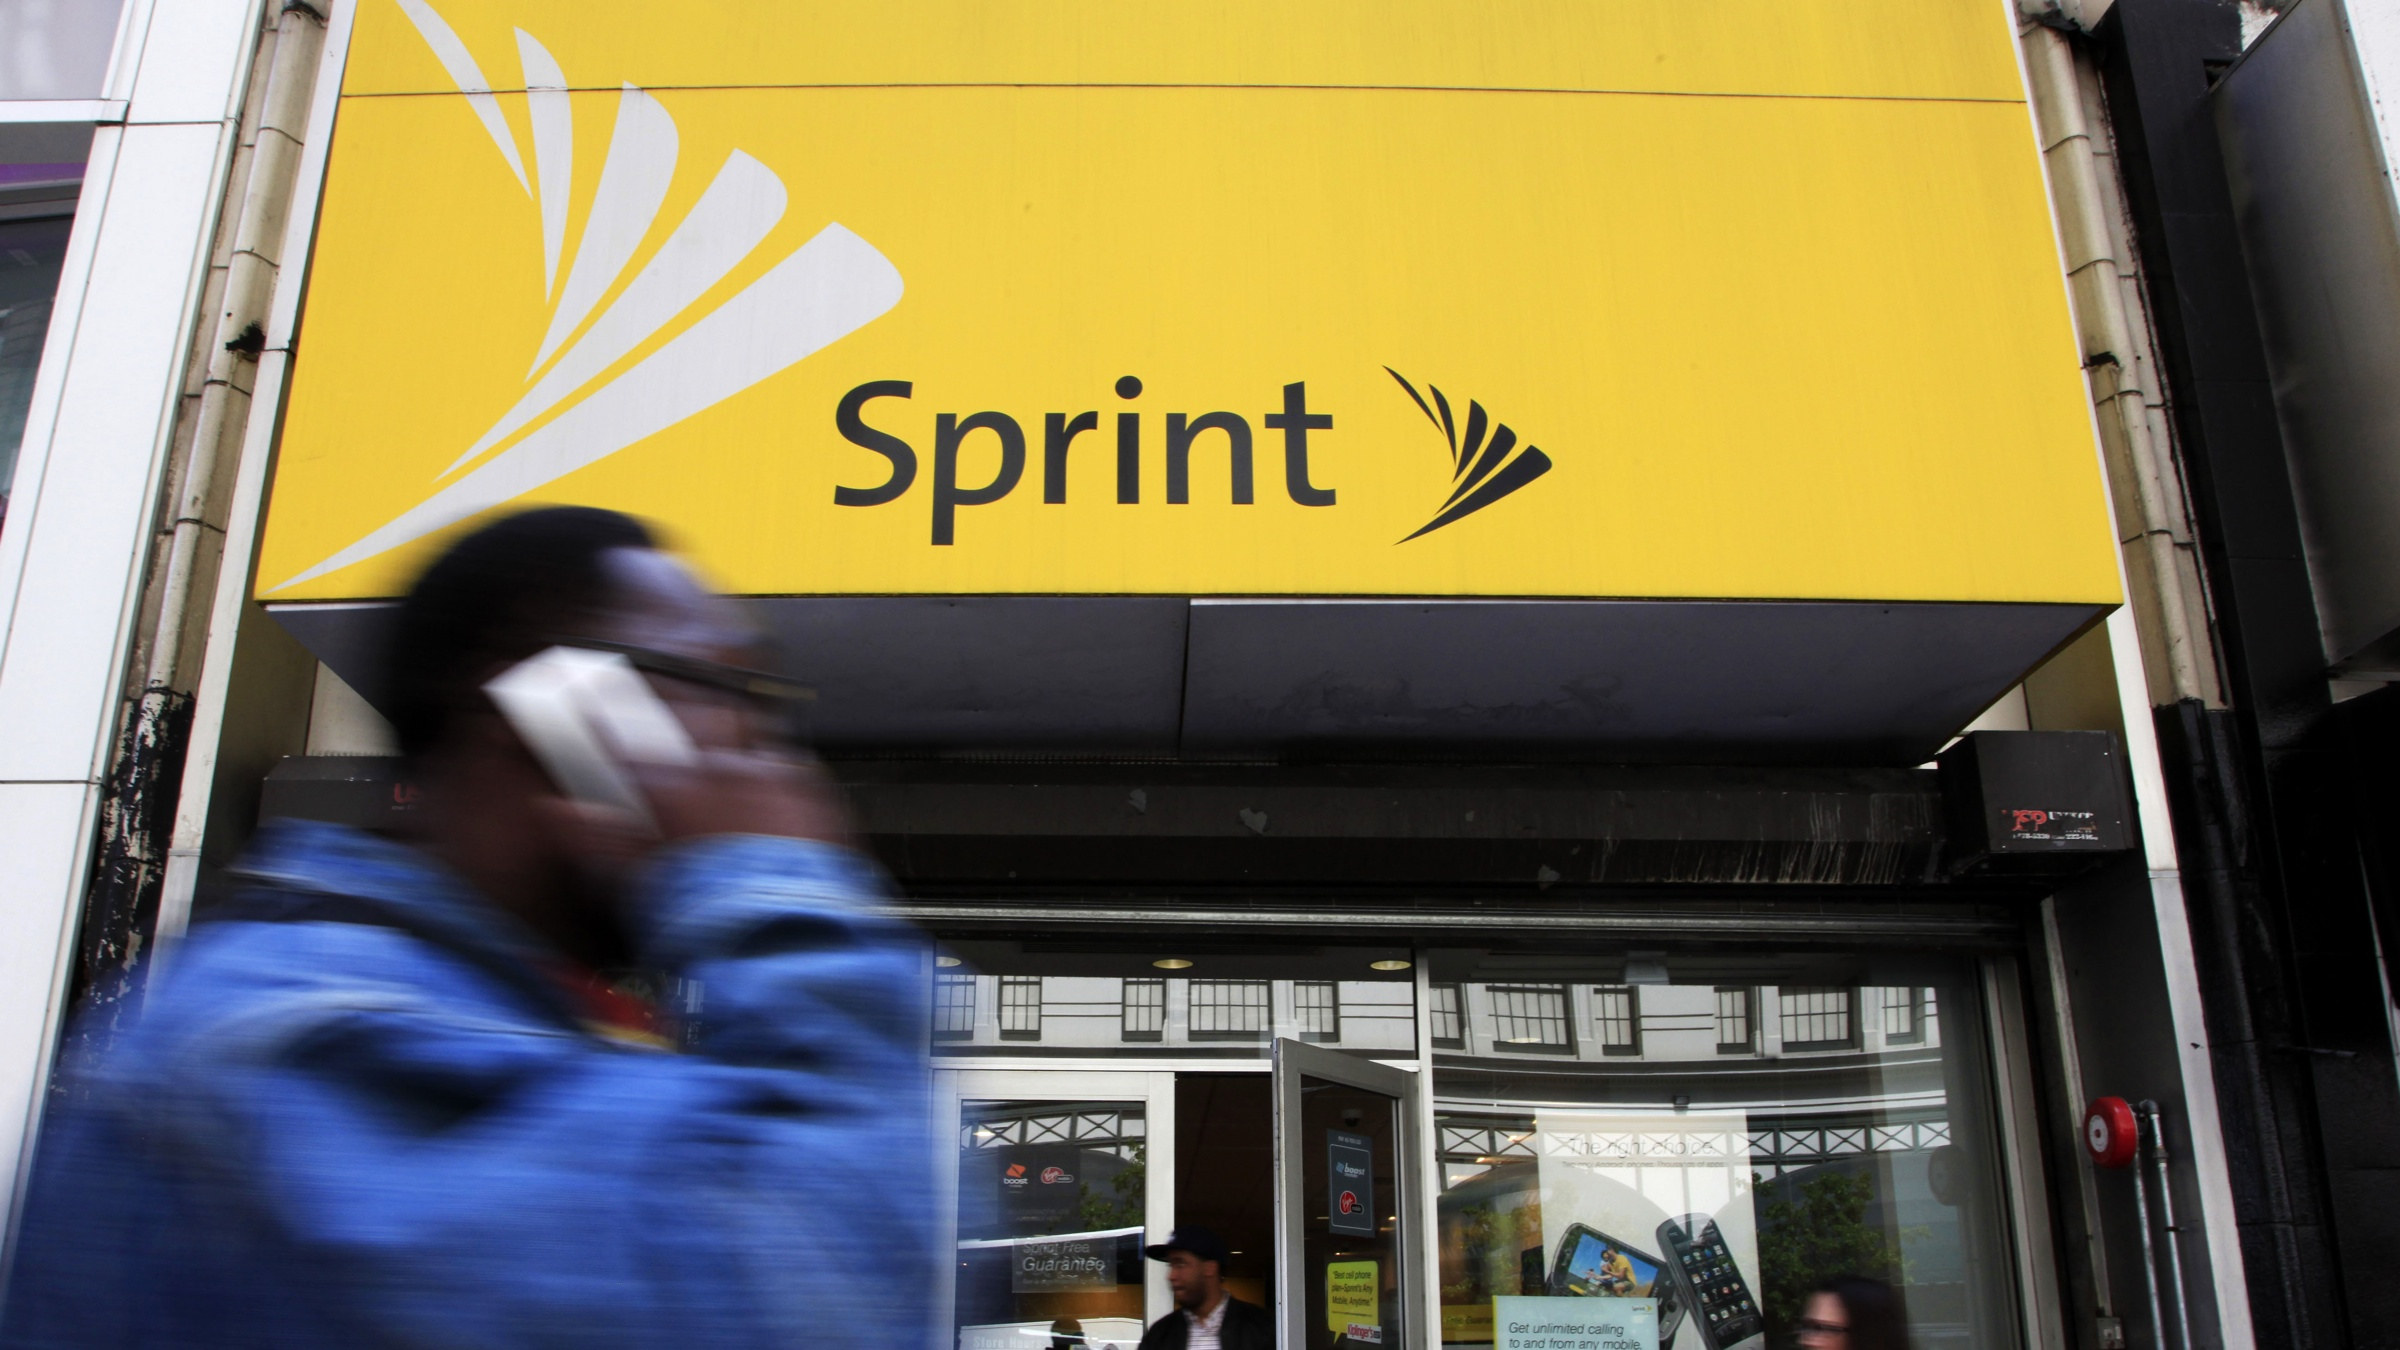 A man using a cell phone walks past a Sprint store, Tuesday, April 27, 2010 in New York. Sprint Nextel Corp. releases quarterly results Wednesday. (AP Photo/Mark Lennihan)